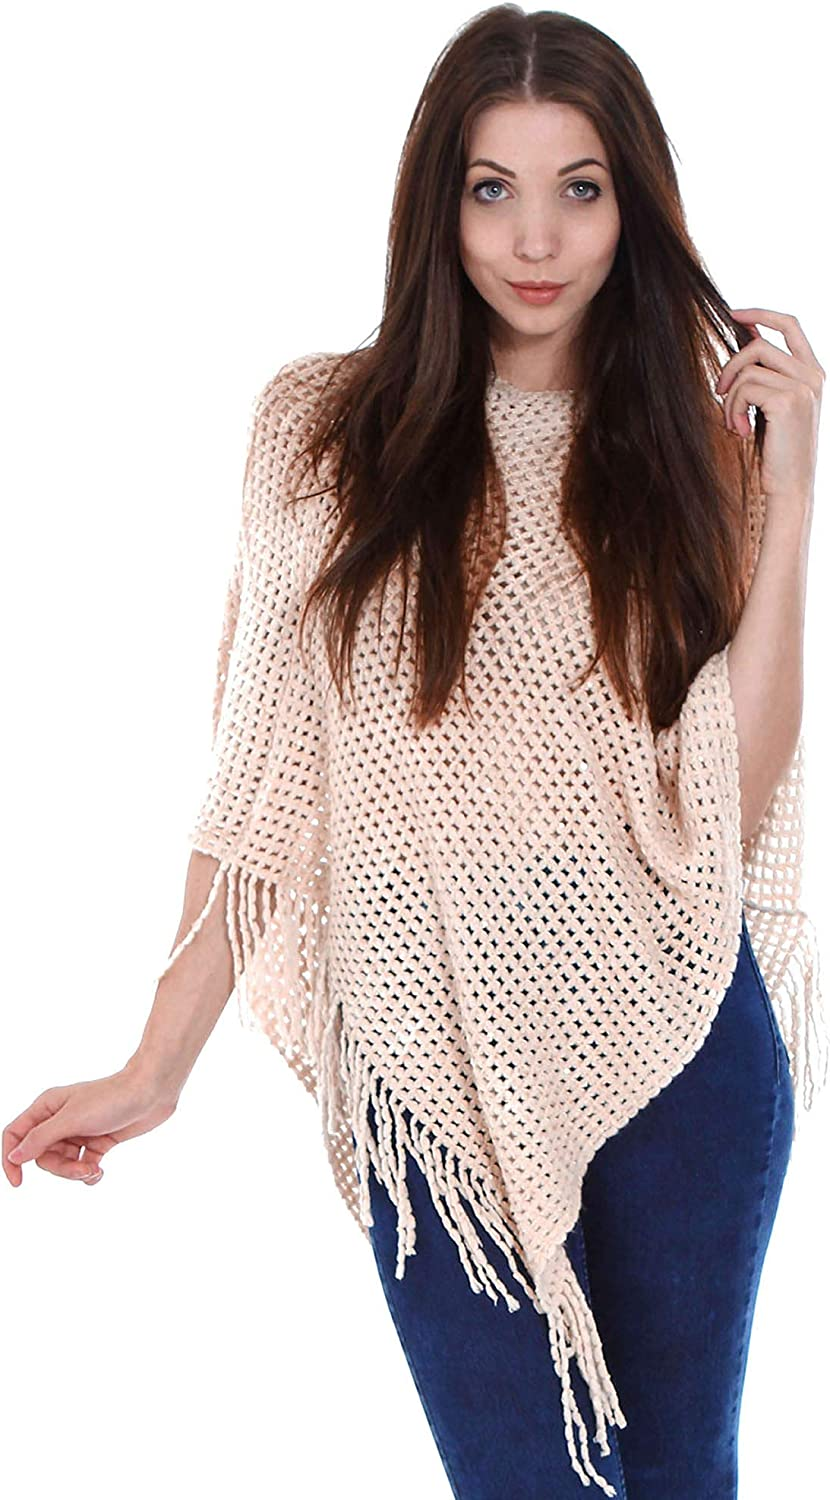 EPGM Pullover Sweater free shipping Women's Knitted Cape w Sequin Popular products Shawl Poncho